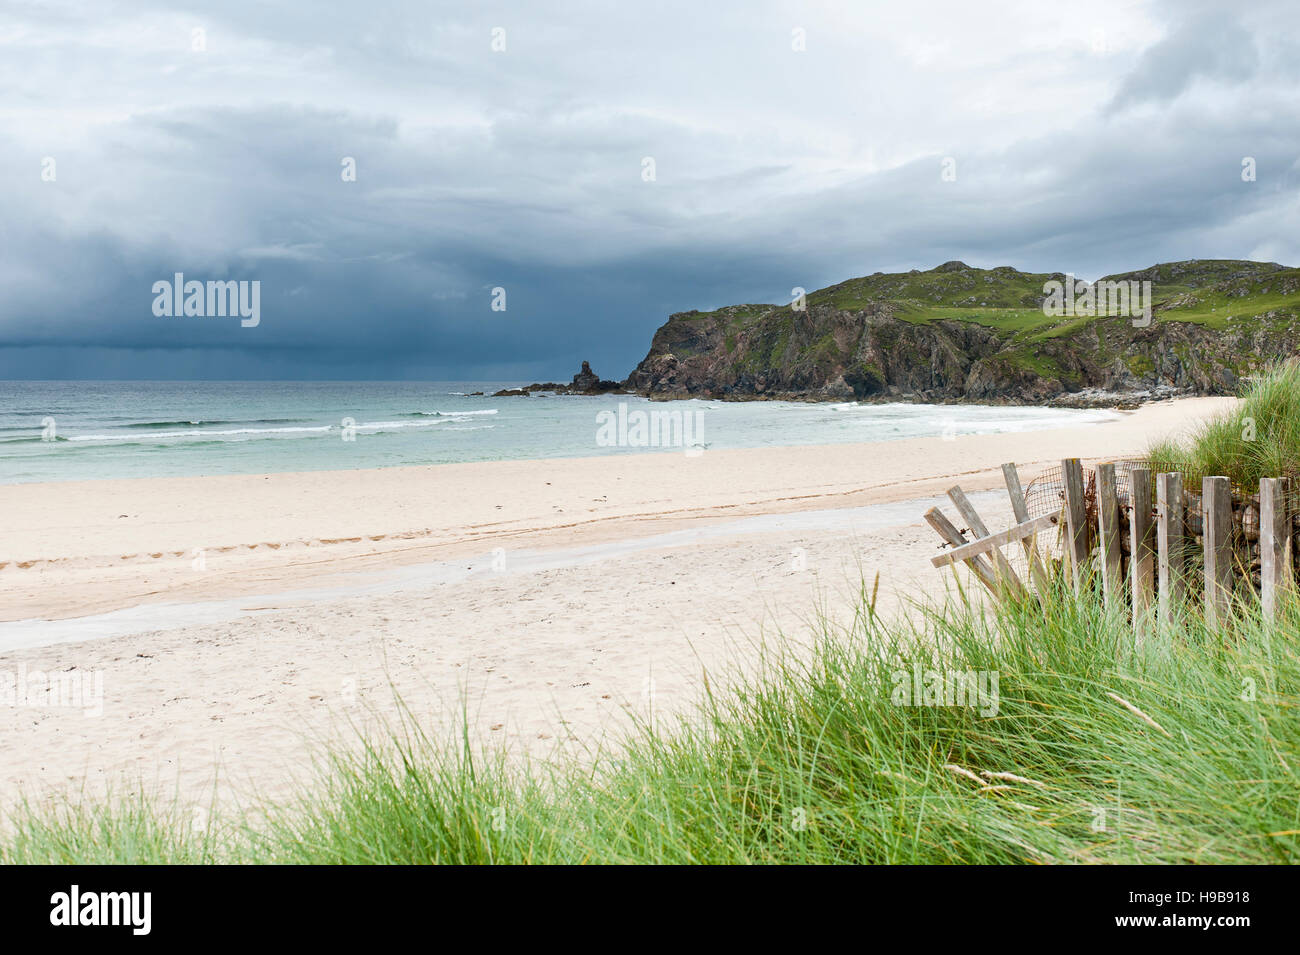 Sandy beach with dark clouds over the coast, Dail Mòr Beach, Dalmore, Carloway, Isle of Lewis, Outer Hebrides, - Stock Image